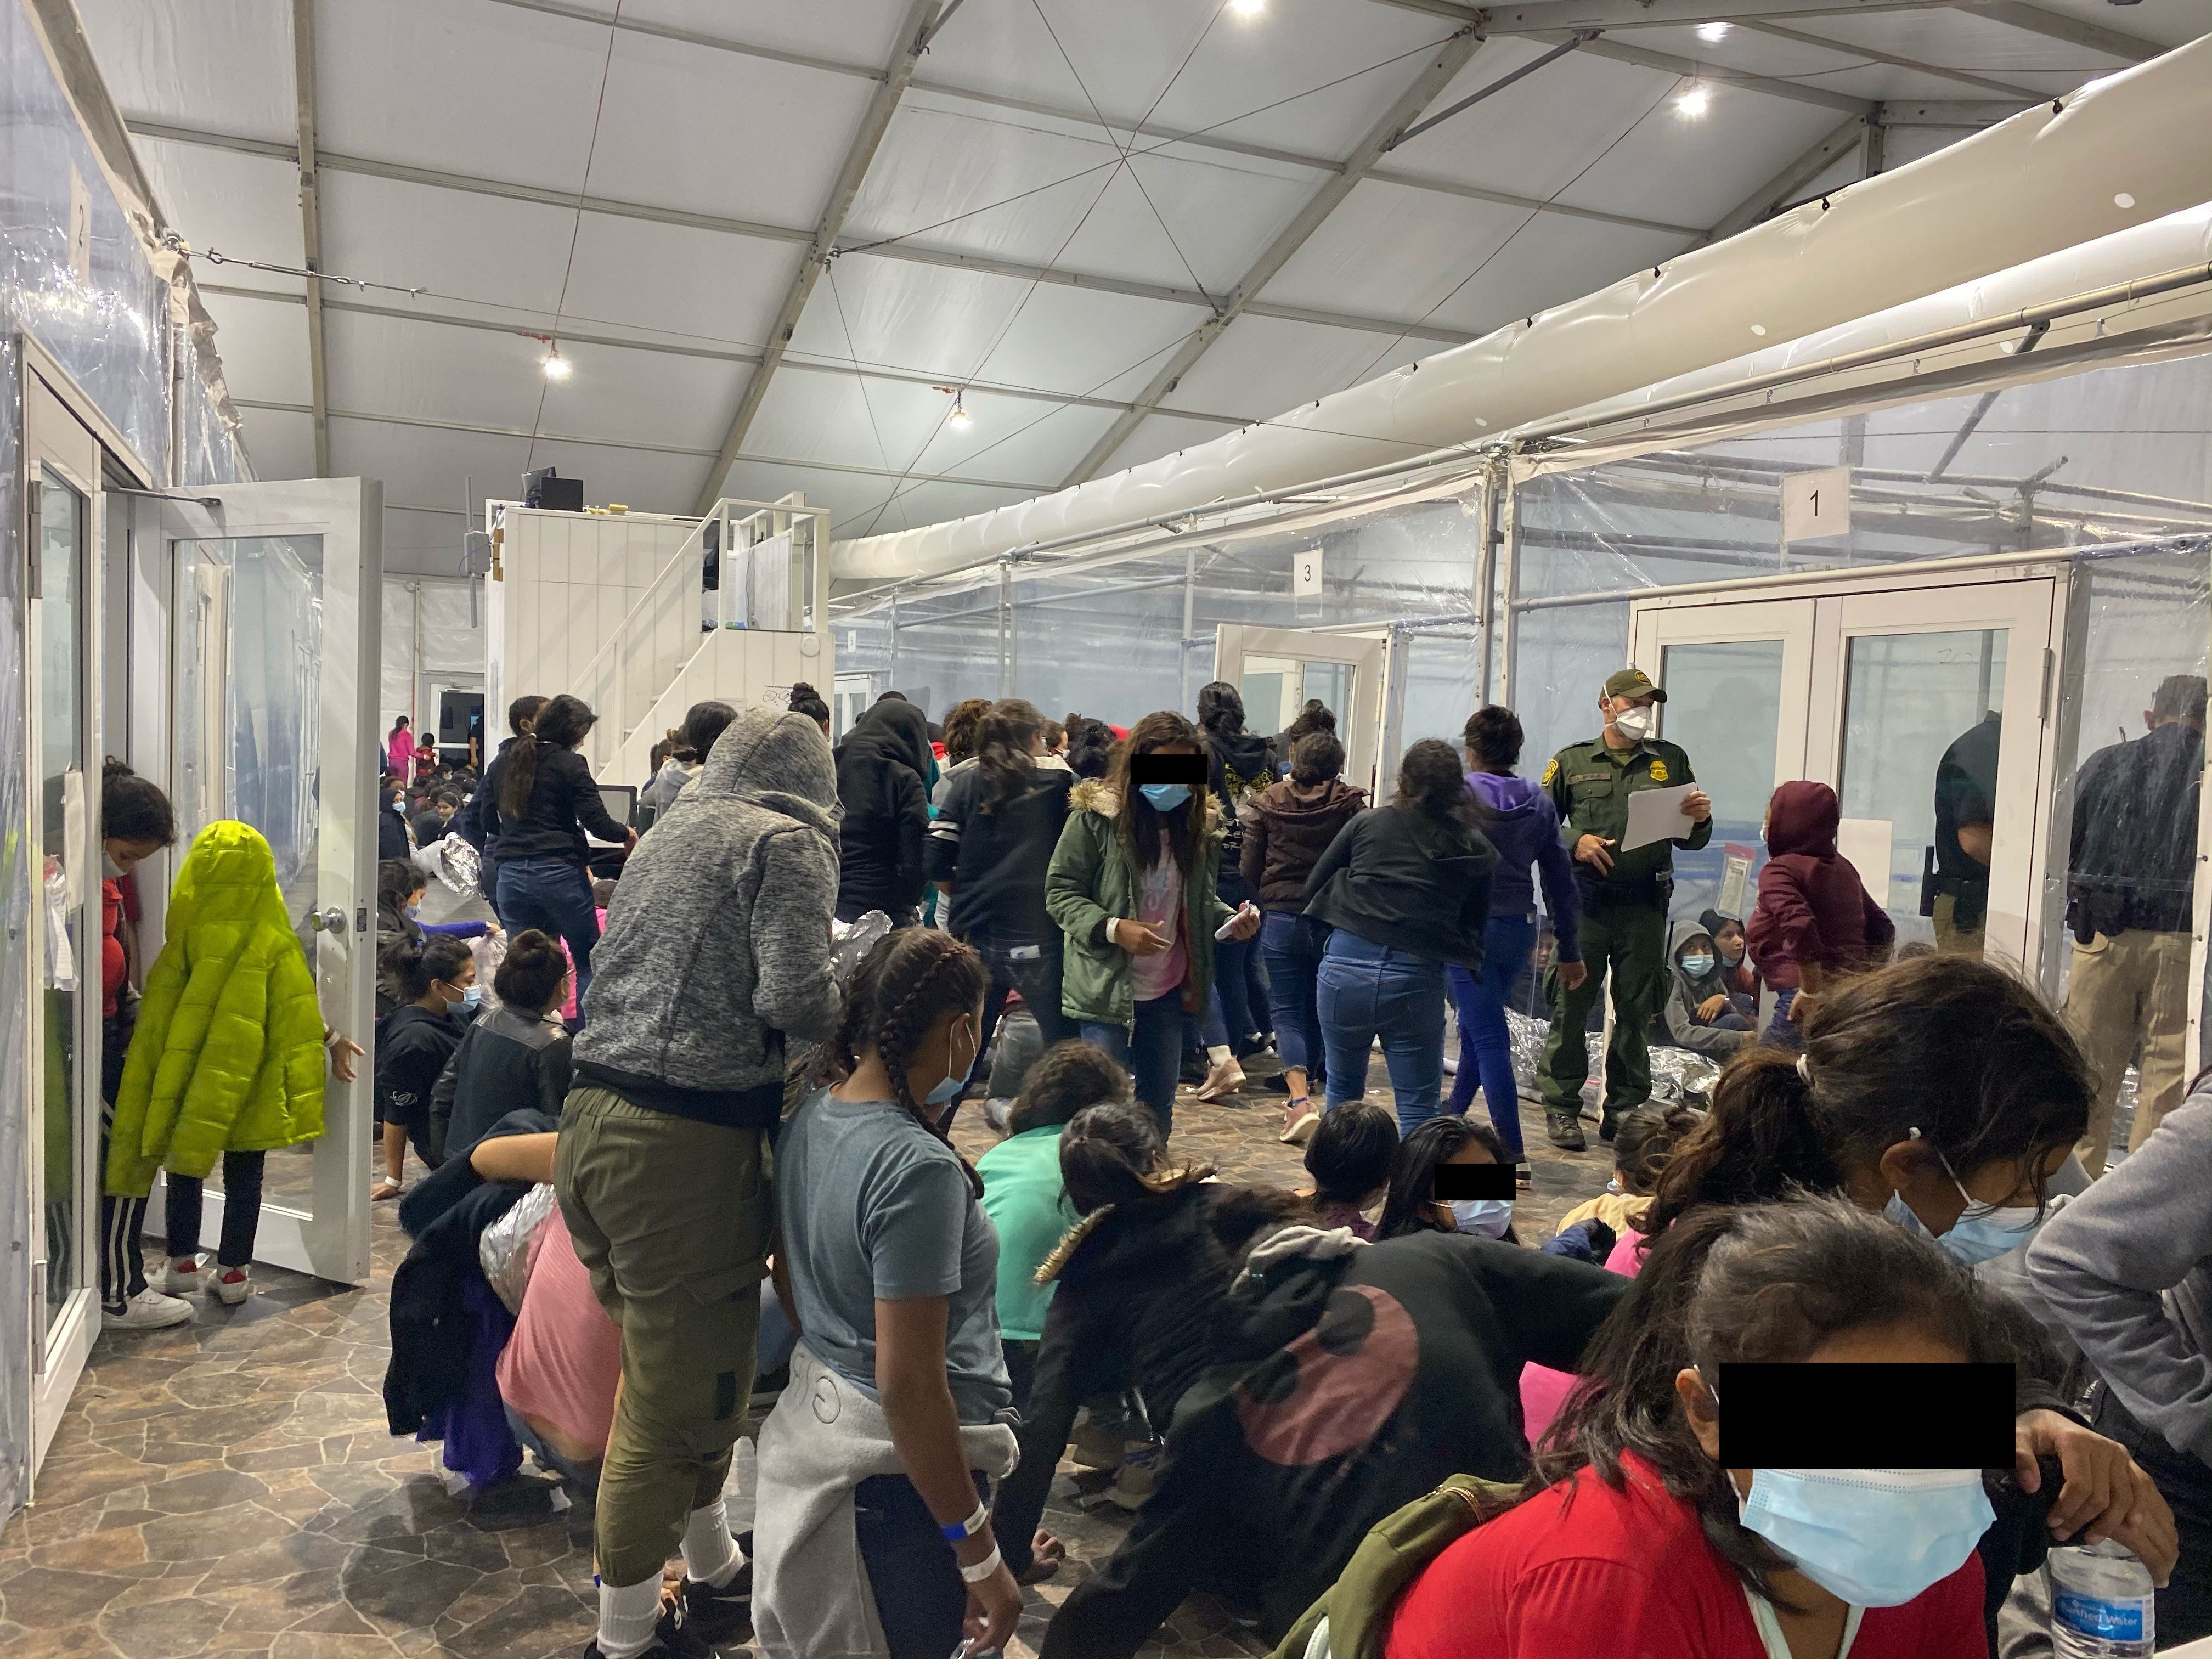 Migrants crowded in border facility in Donna, Texas